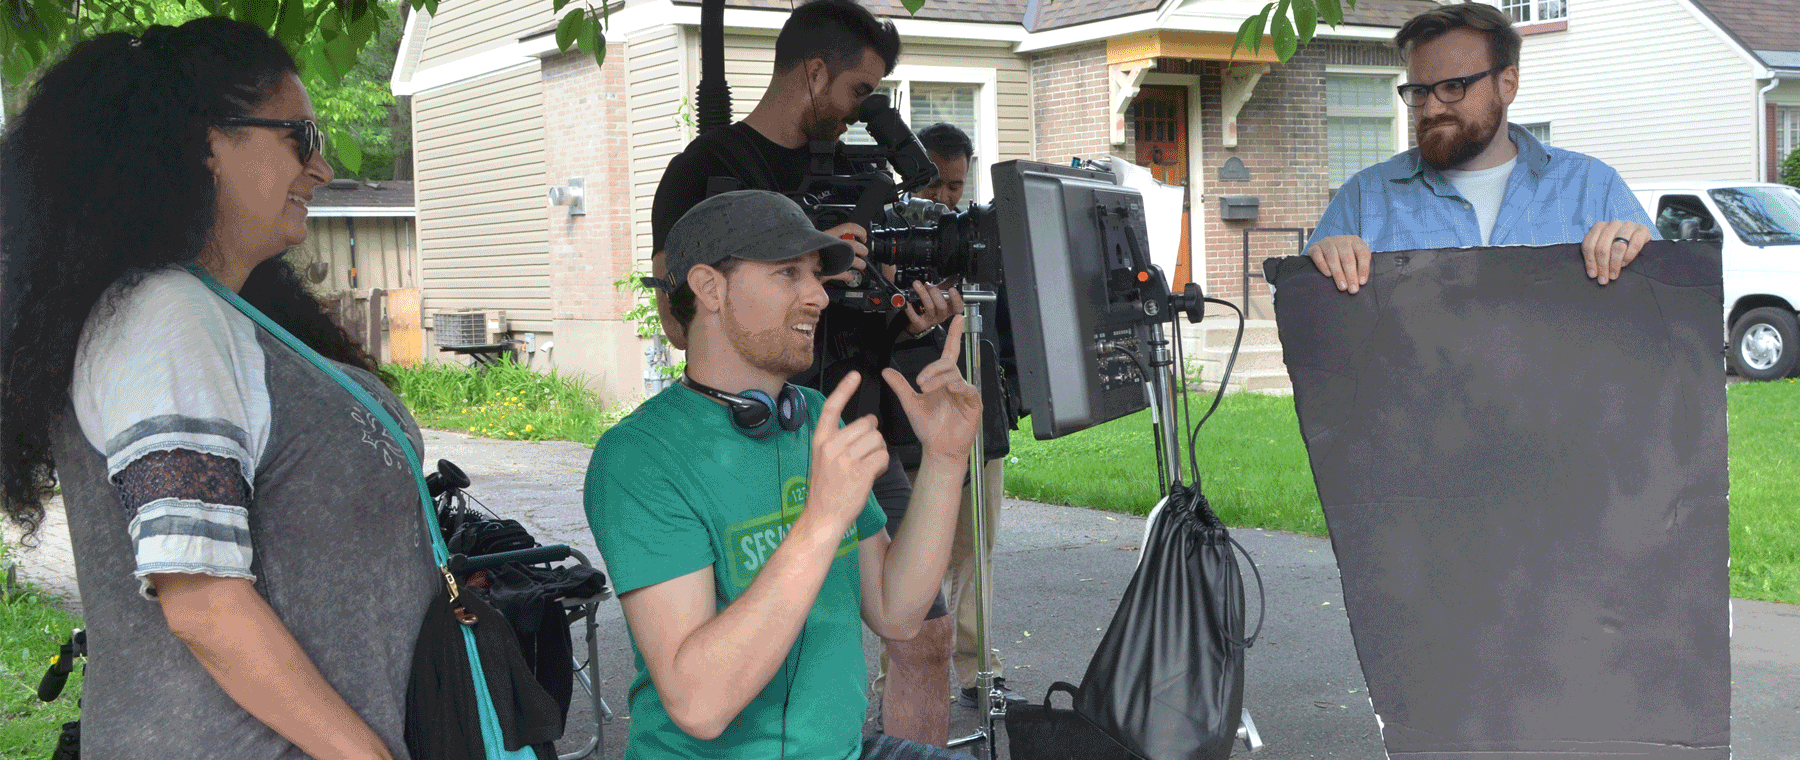 Ottawa's own Sesame Street segment proof the local film industry is thriving